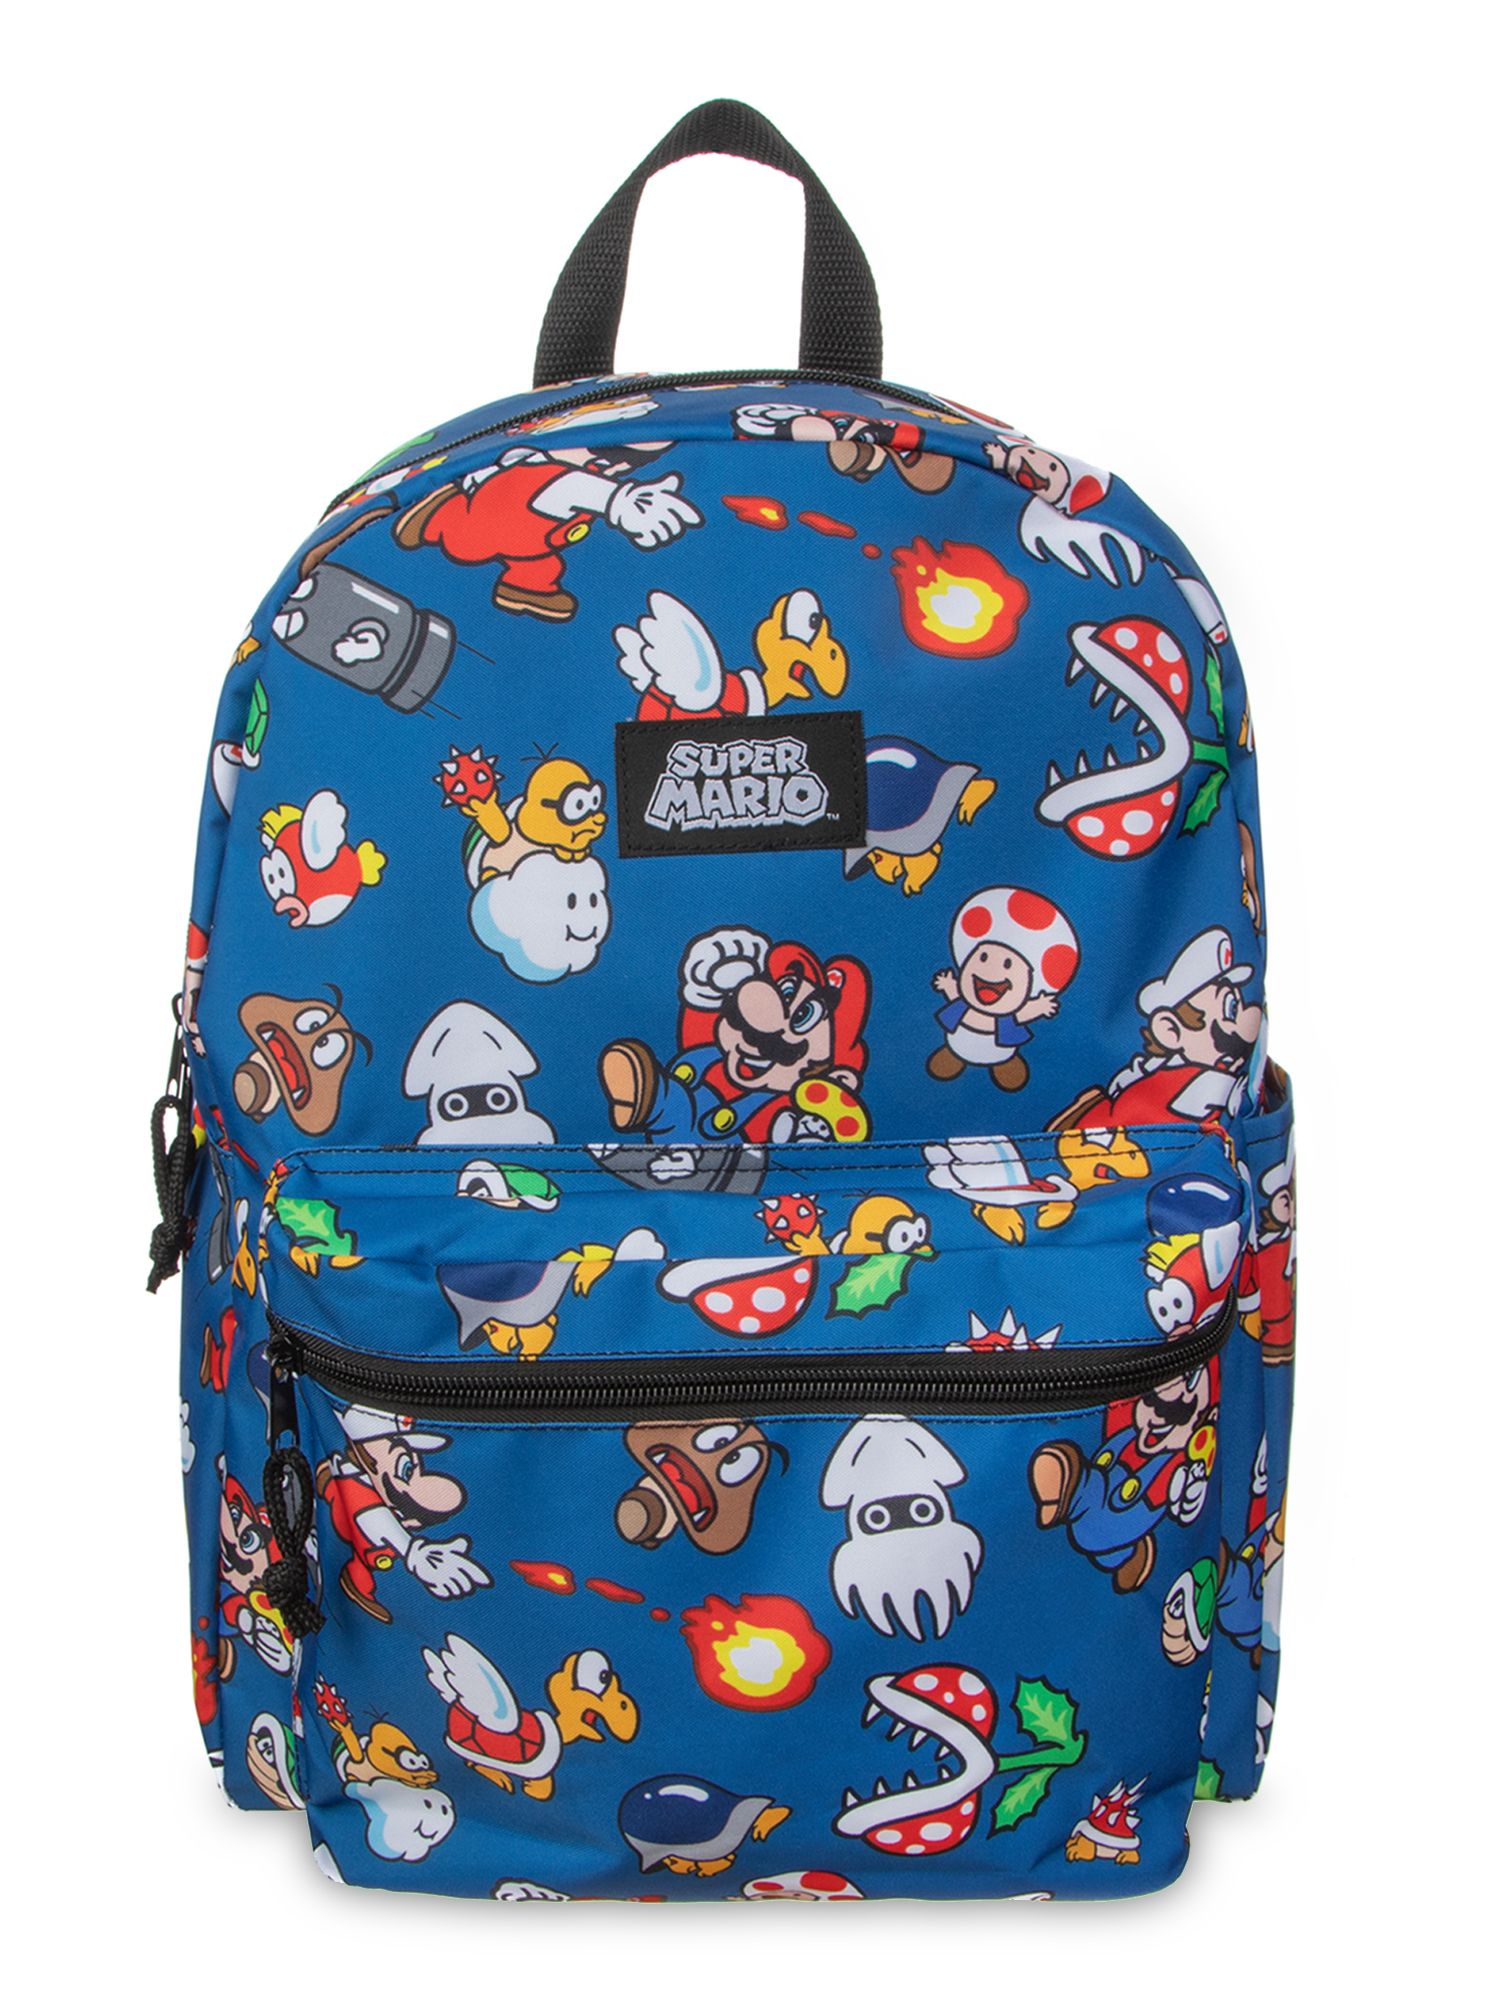 Book Bags For Sale At Walmart